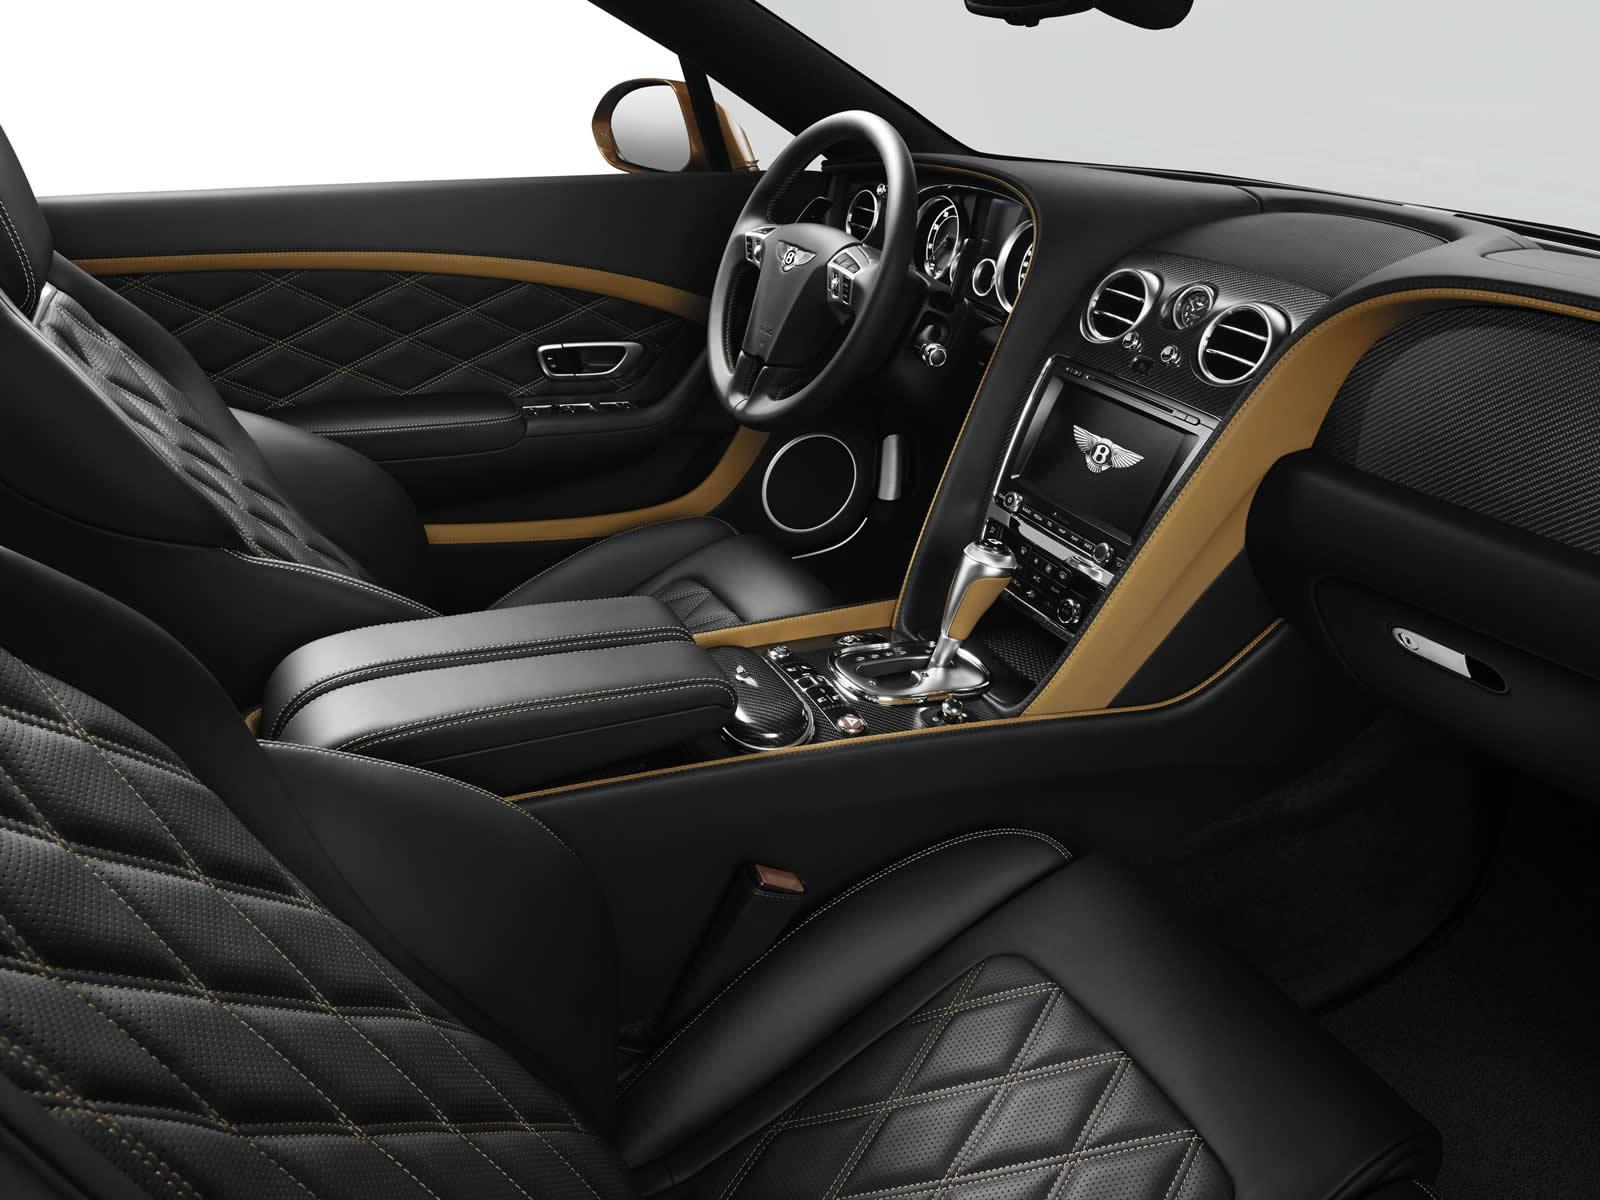 2014 Bentley Continental GT Speed Introduced With Even More Power ...